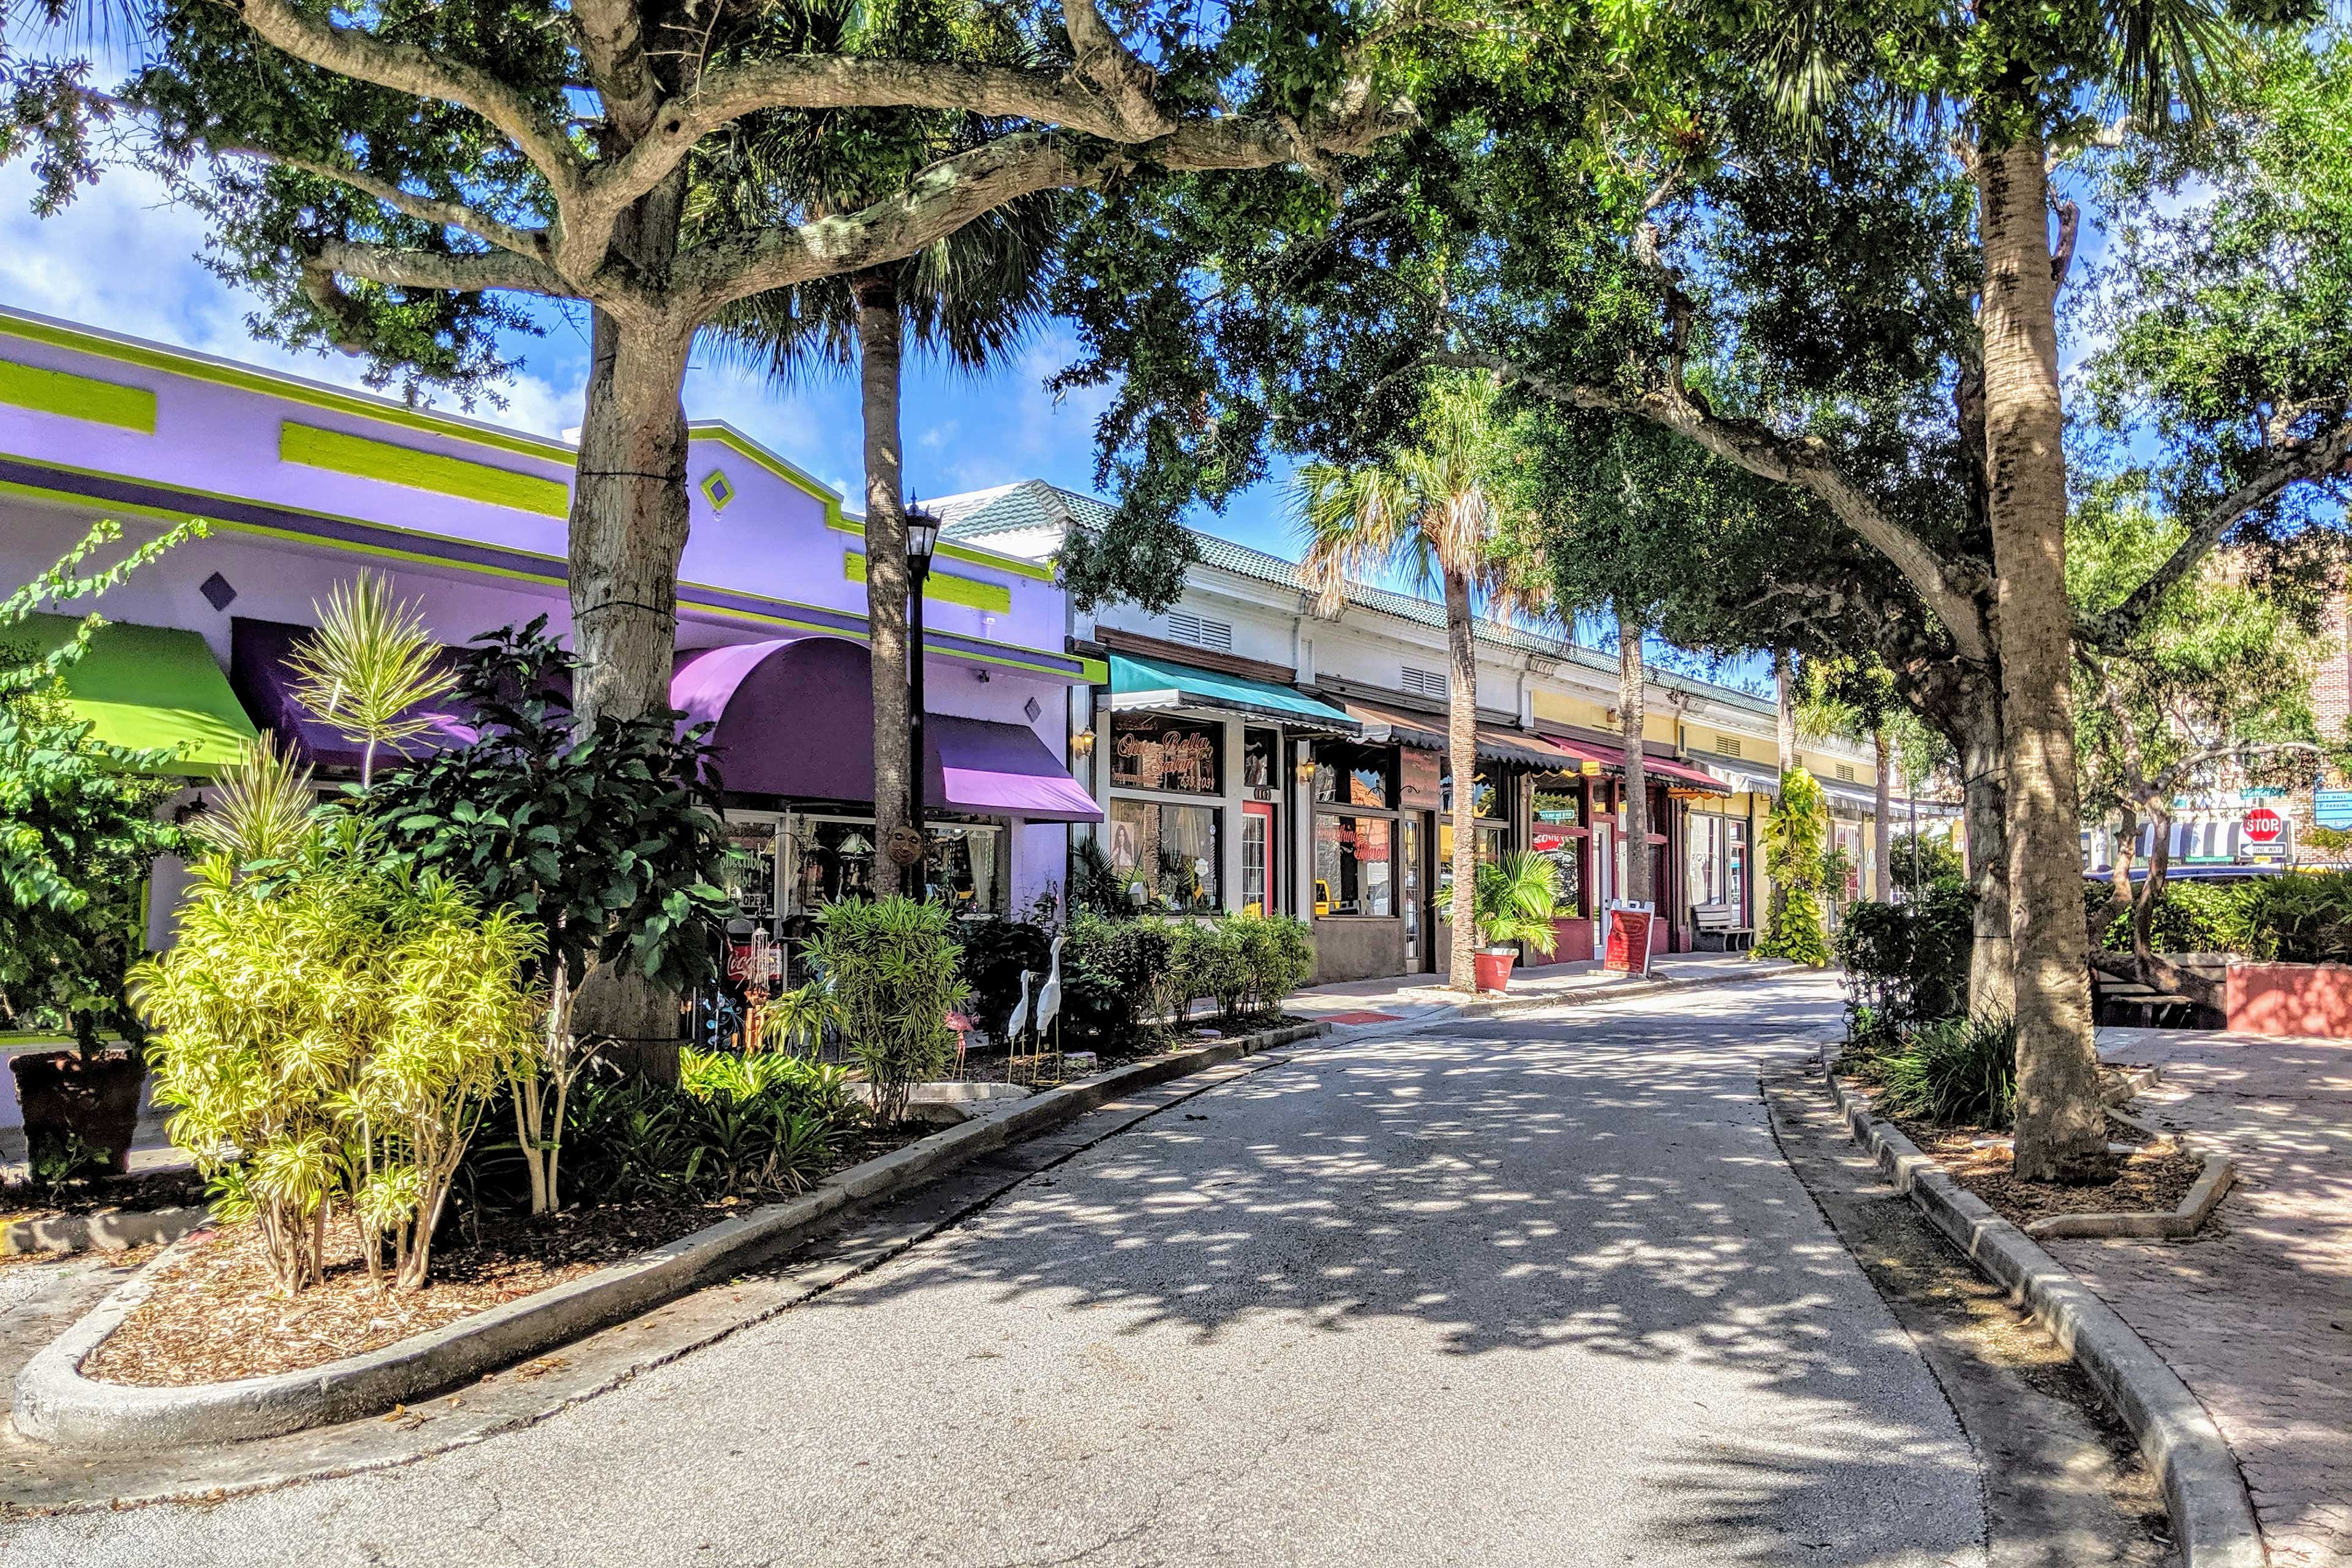 Peruse the Cocoa Village shops and restaurants!